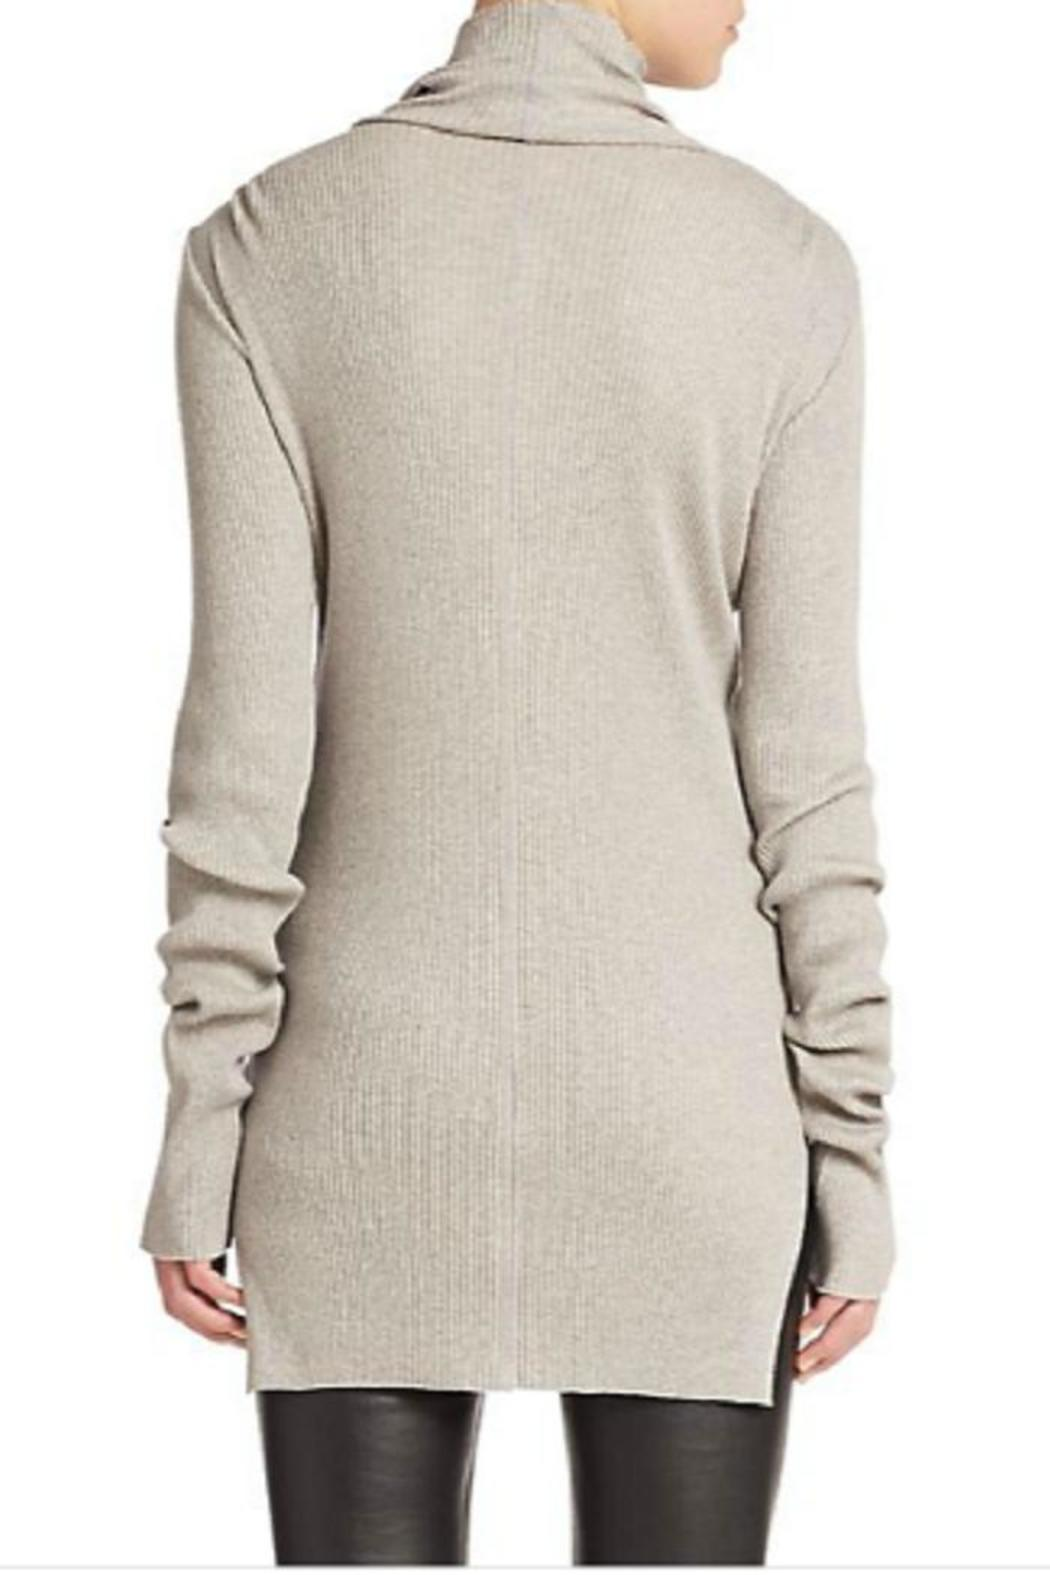 Helmut Lang Ribbed Turtleneck Sweater from Canada by Black Caviar ...